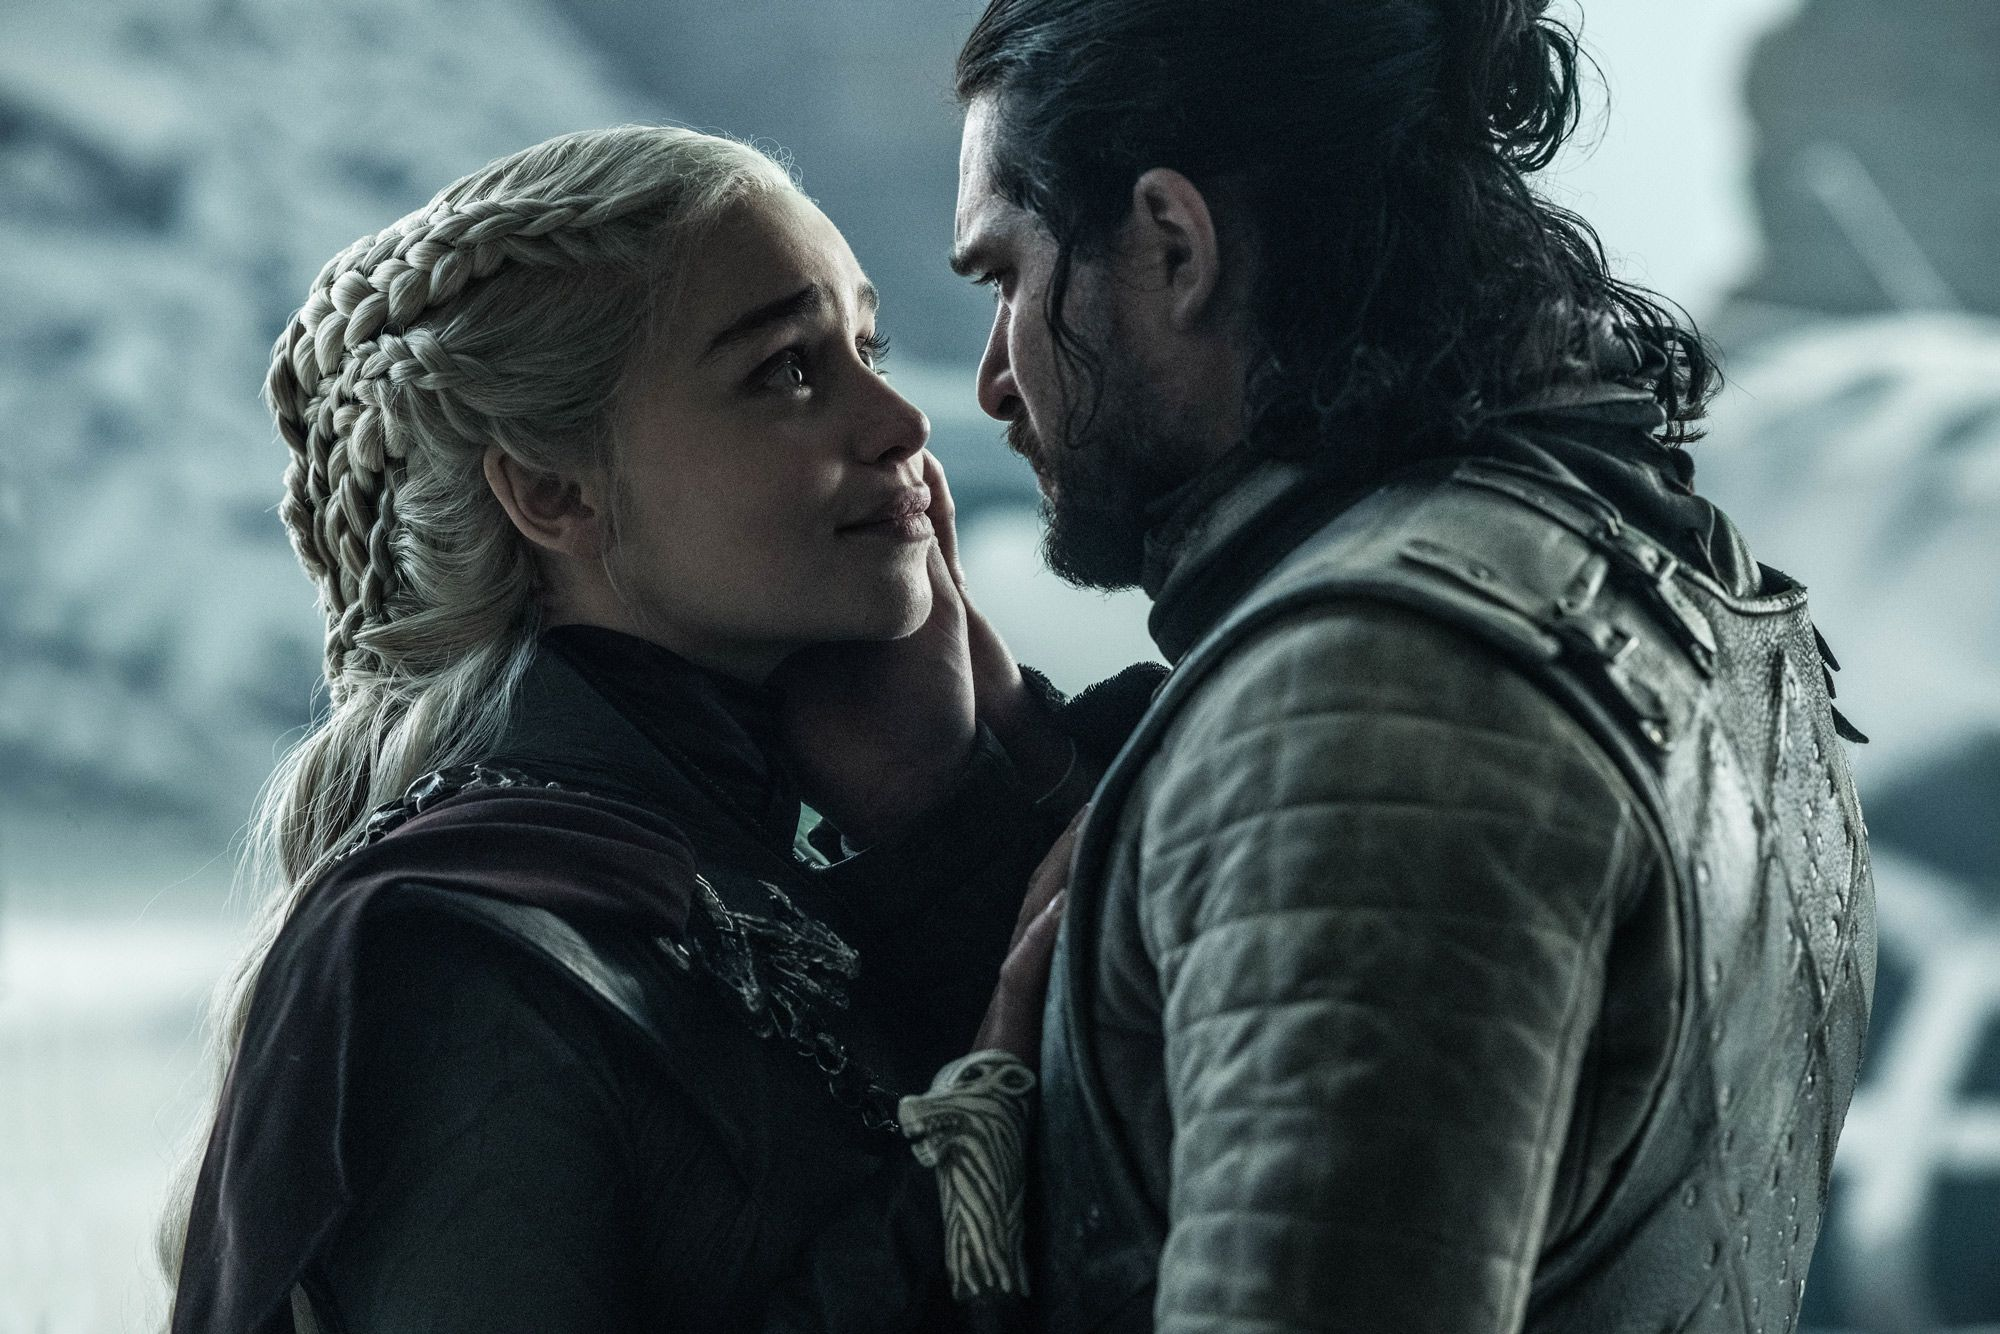 emilia clarke unhappy with game of thrones ending